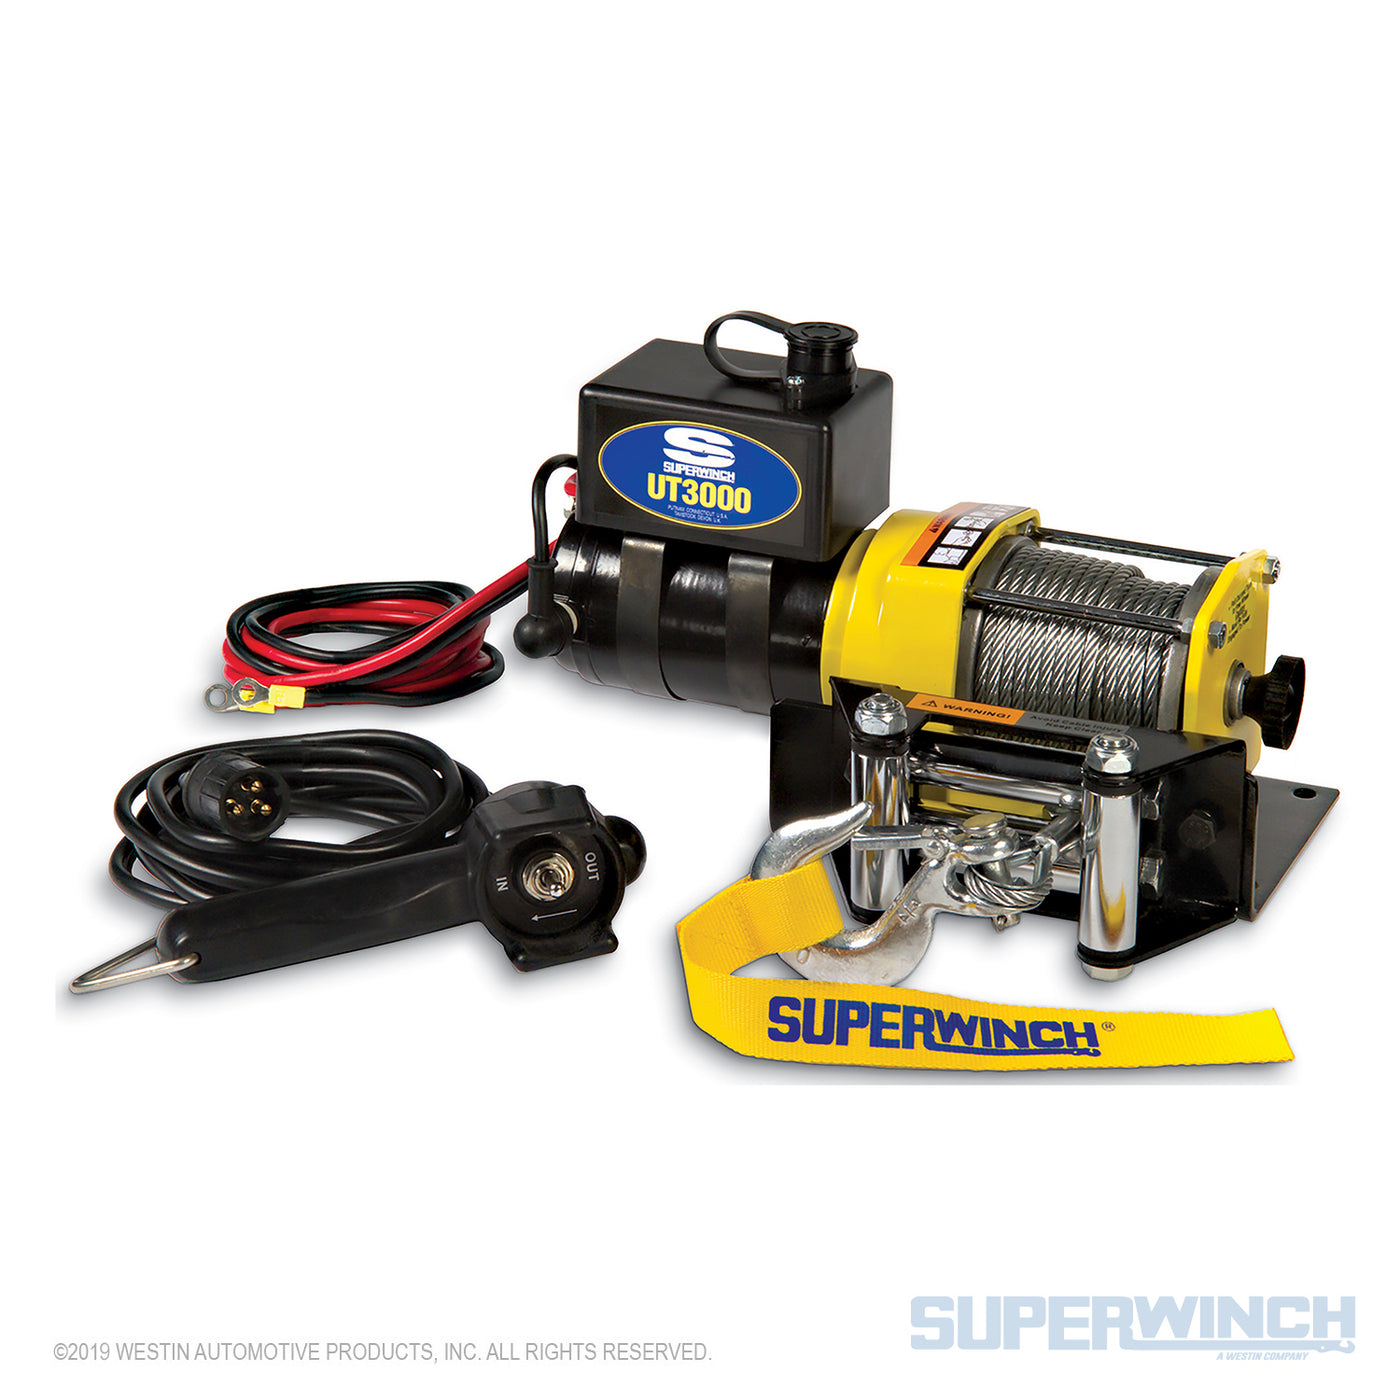 12 volt electric winch wiring diagram superwinch lt 3000 electric winch is perfect for winching  boat  superwinch lt 3000 electric winch is